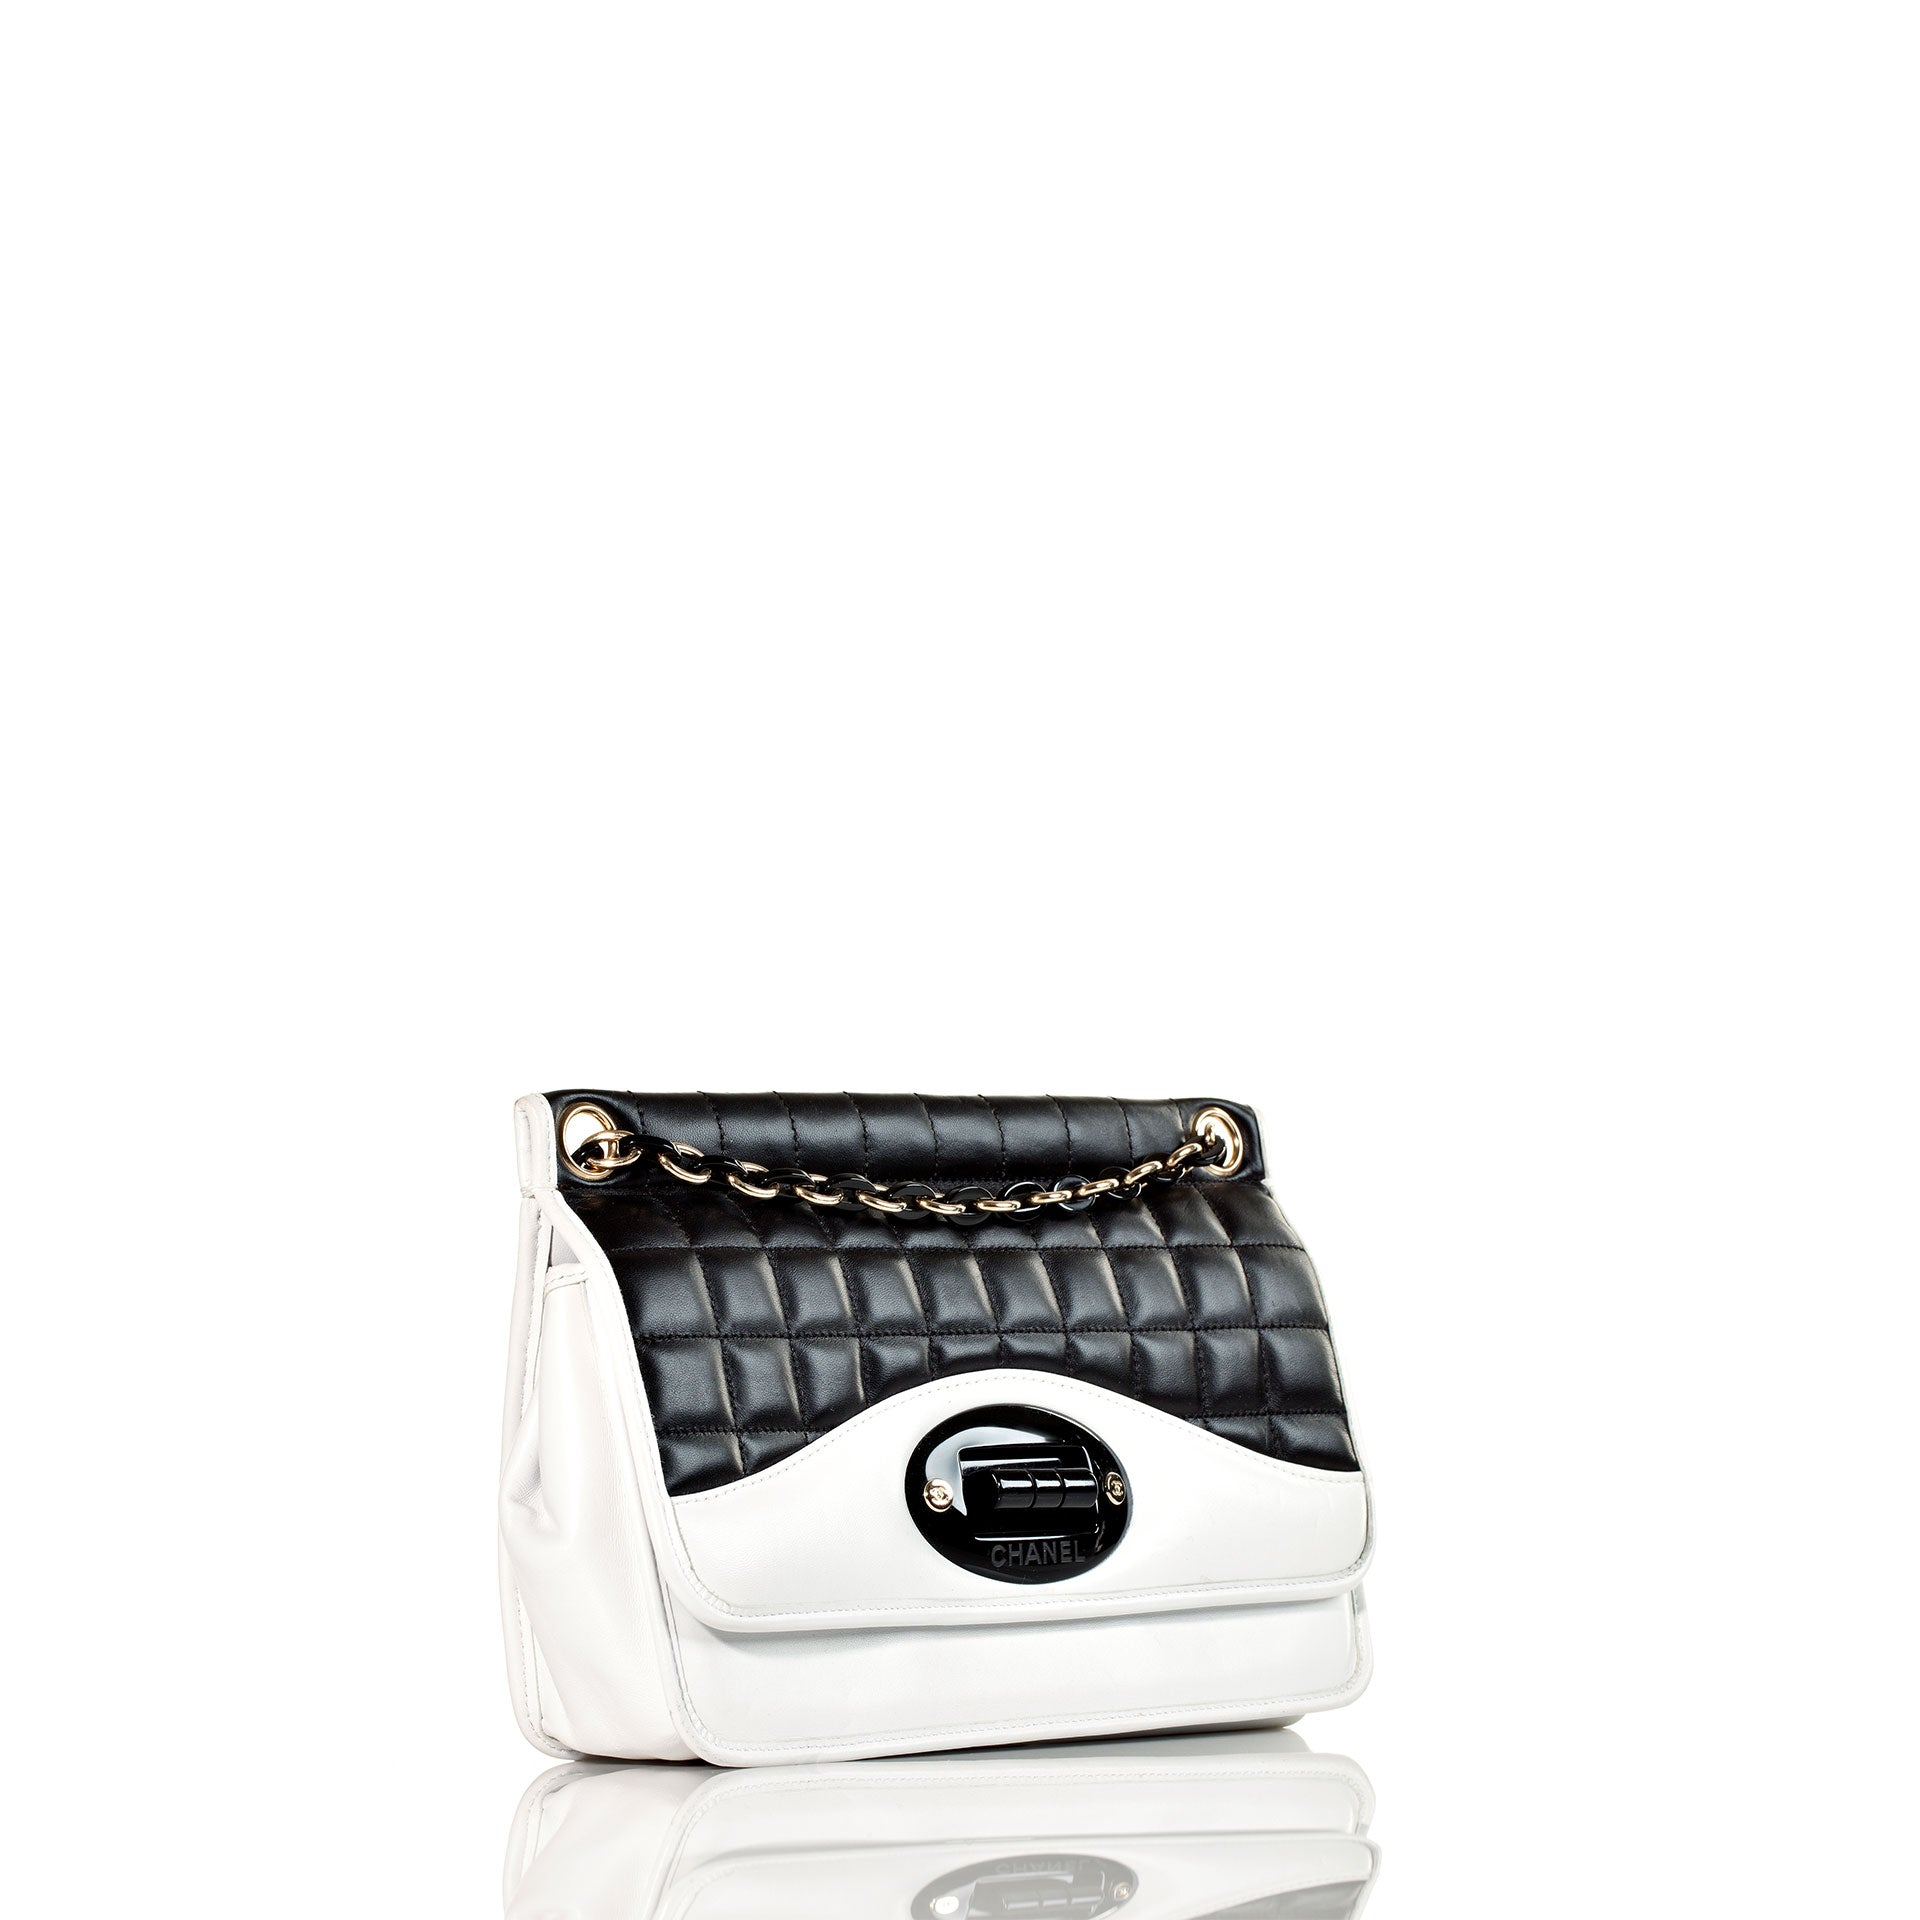 Chanel Two Tone Black and White Mademoiselle Flap Bag